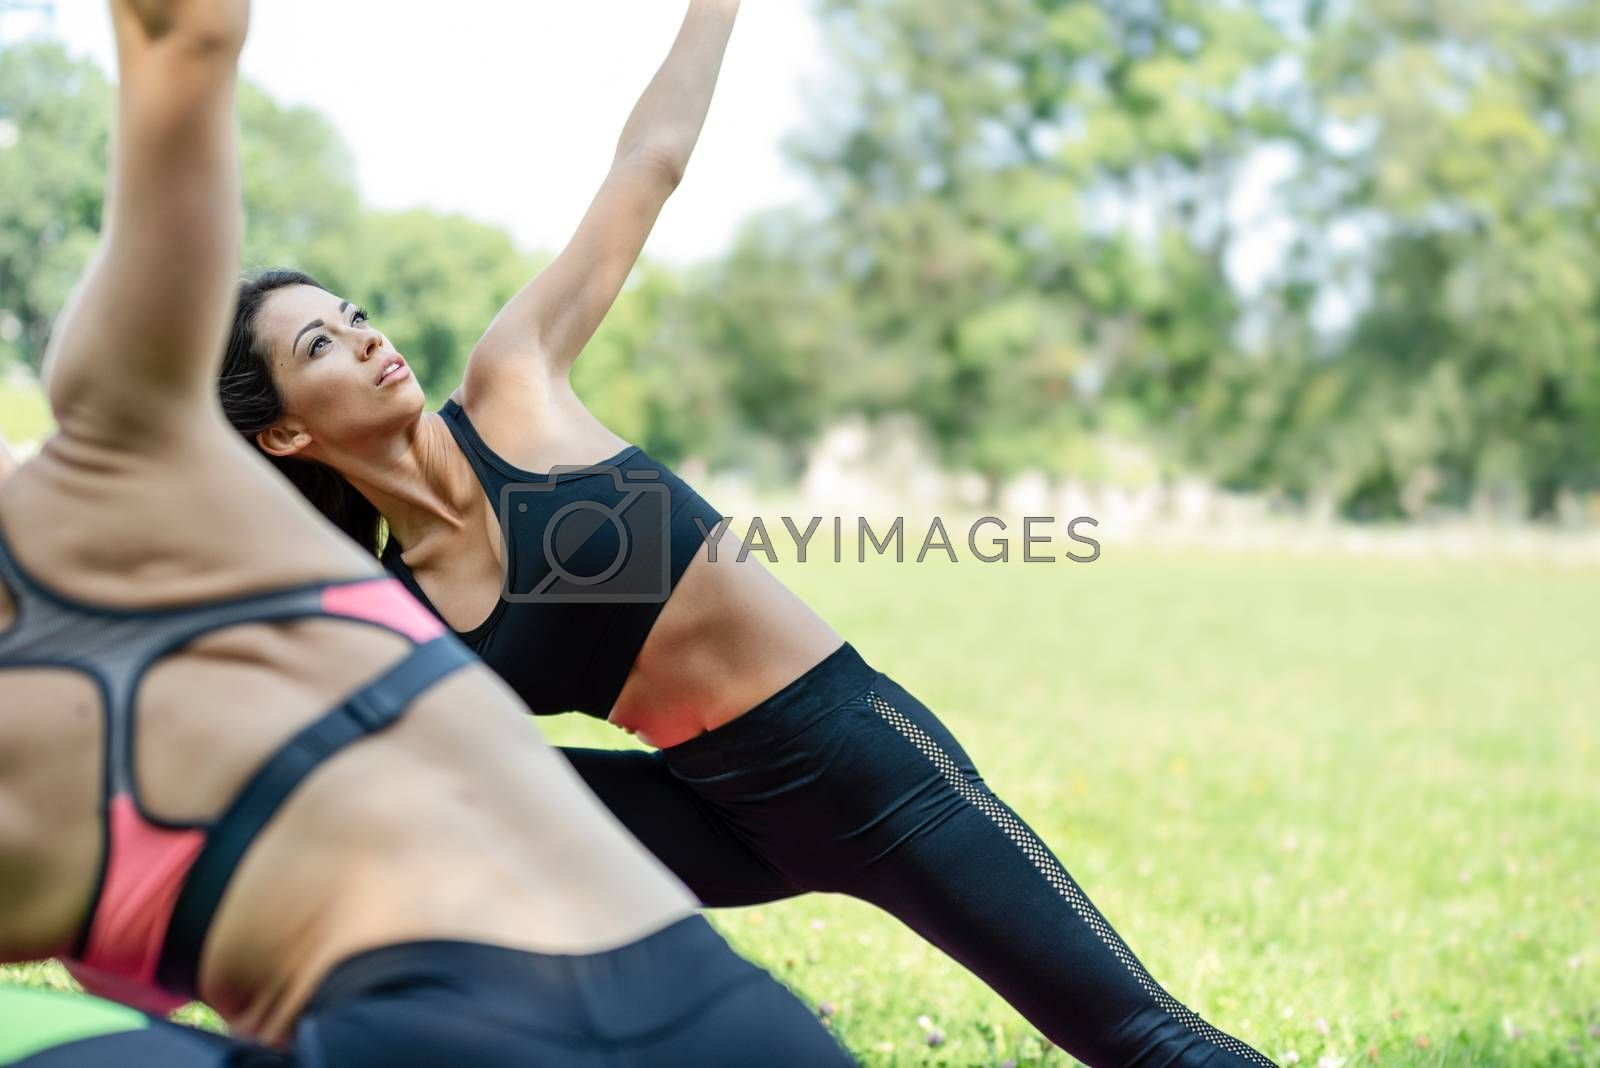 Two beautiful young women doing yoga exercises in the park on a sunny day in close-up (copy space).